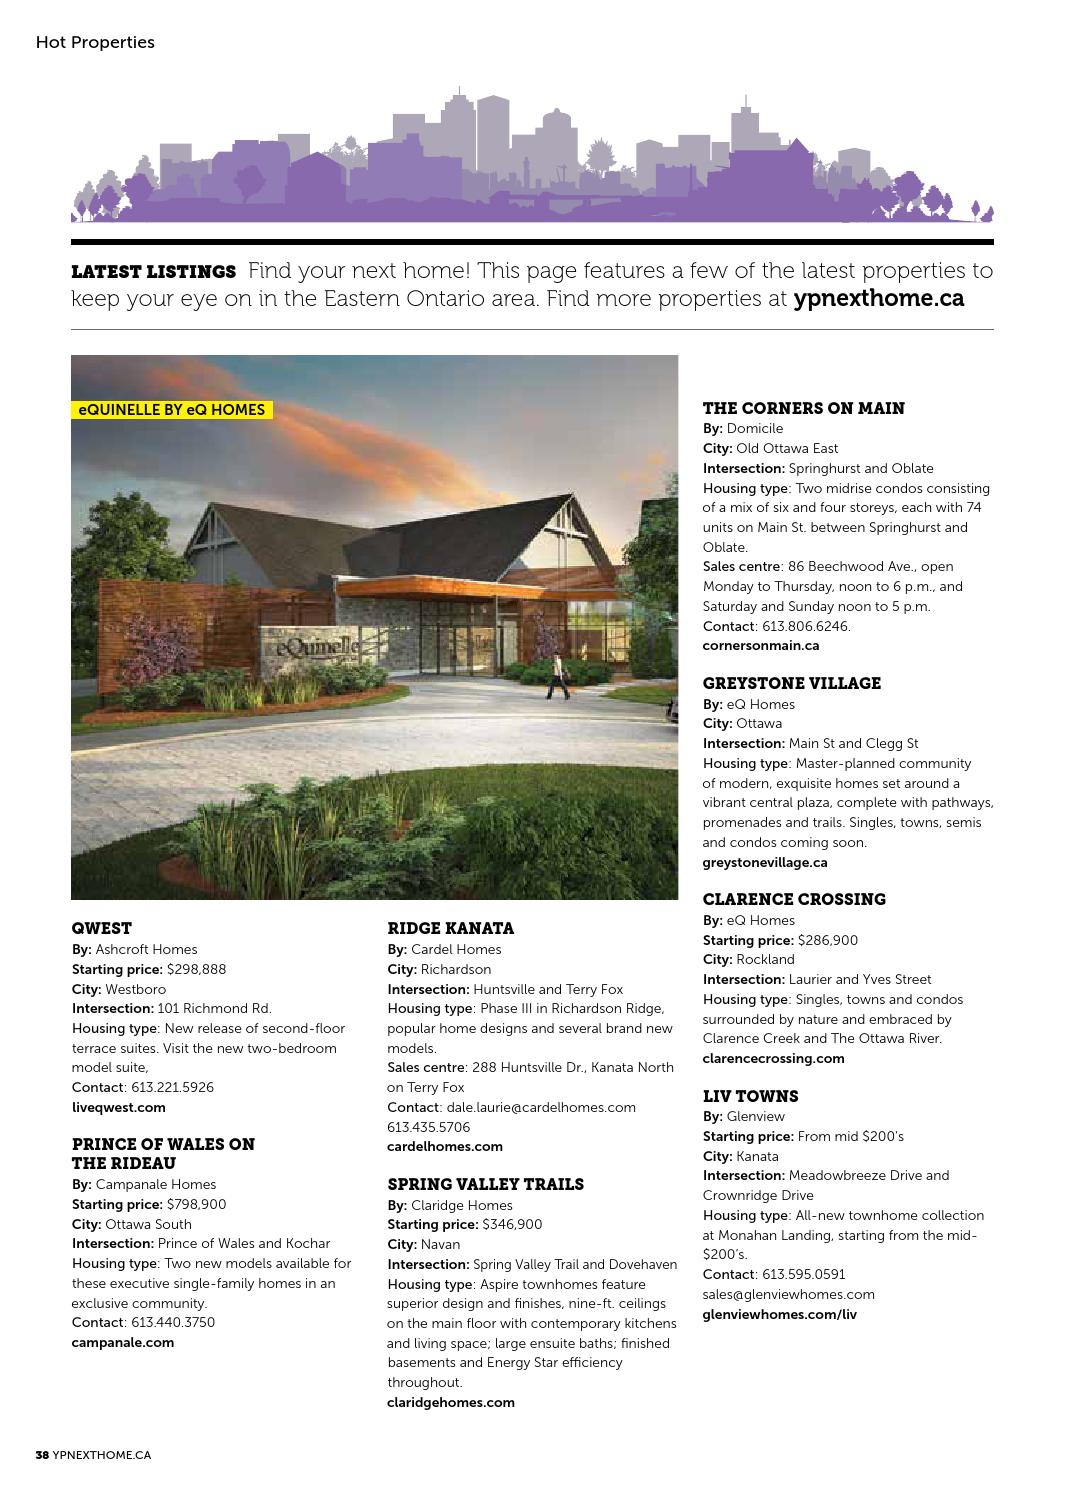 Eastern Ontario New Home & Condo Guide - Sept 19, 2015 by ...